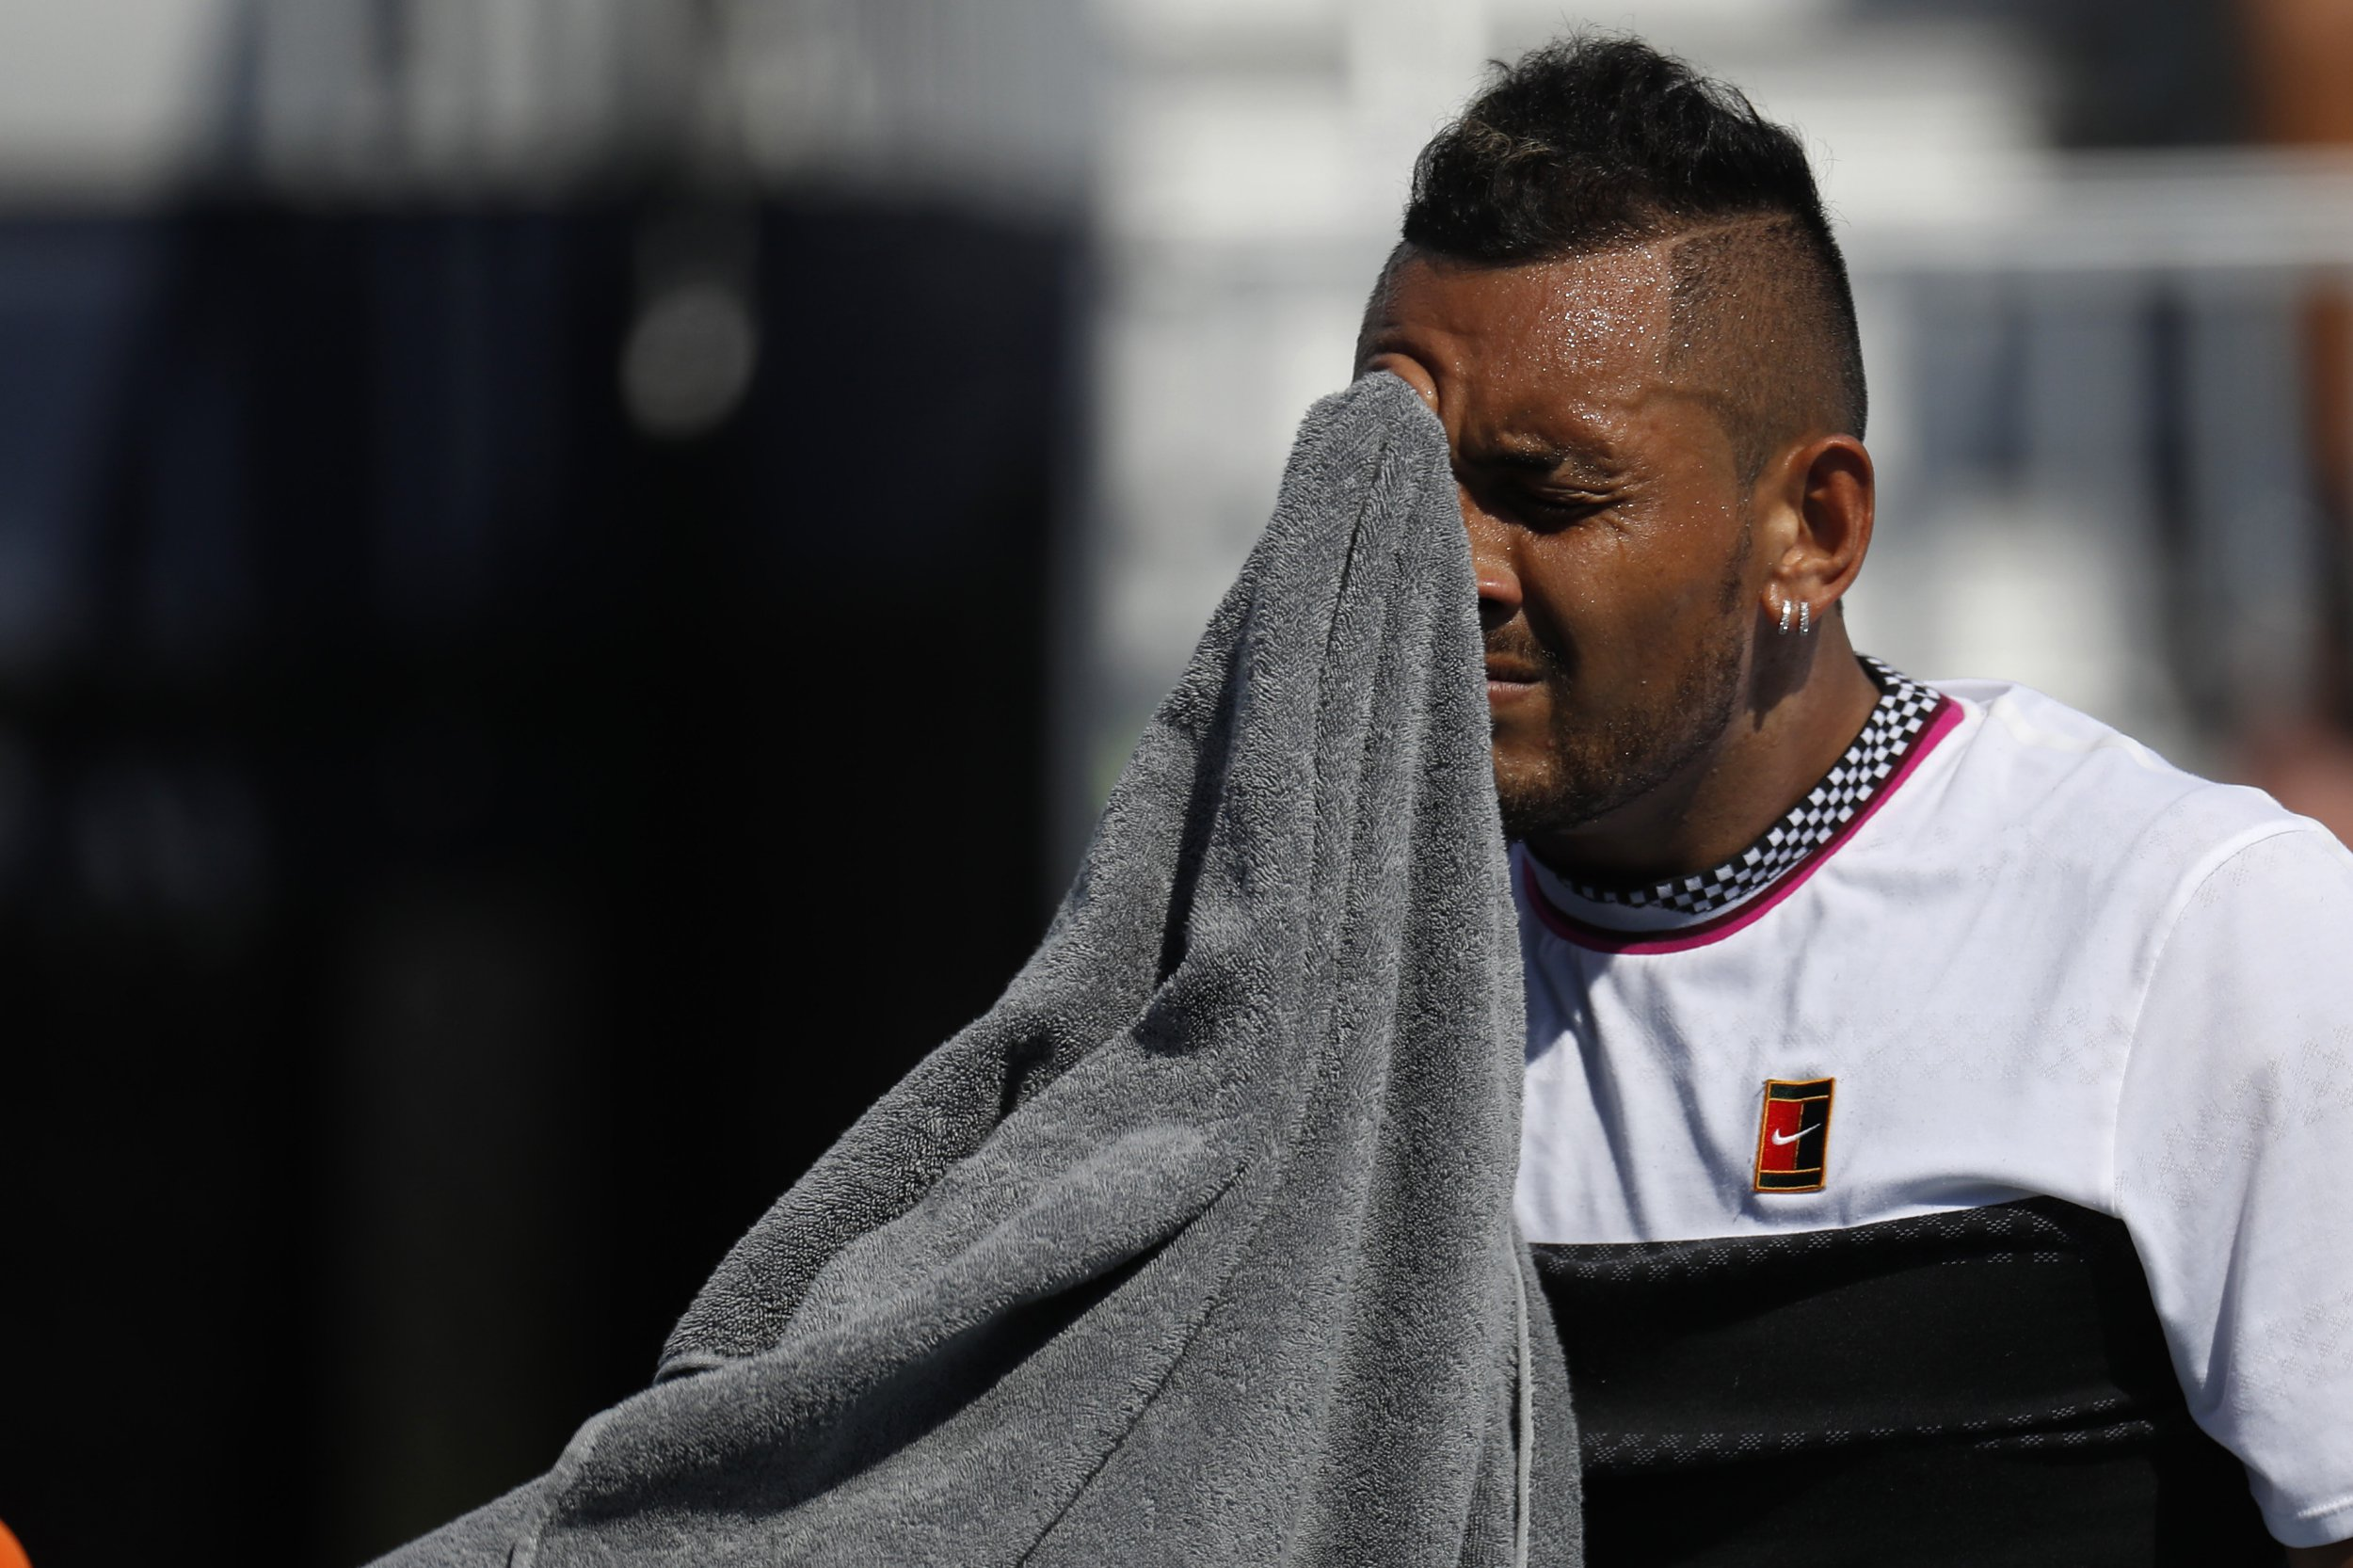 Nick Kyrgios of Australia wipes his face with a towel between points against Borna Coric of Croatia (not pictured) in the fourth round of the Miami Open at Miami Open Tennis Complex. Mandatory Credit: Geoff Burke-USA TODAY Sports